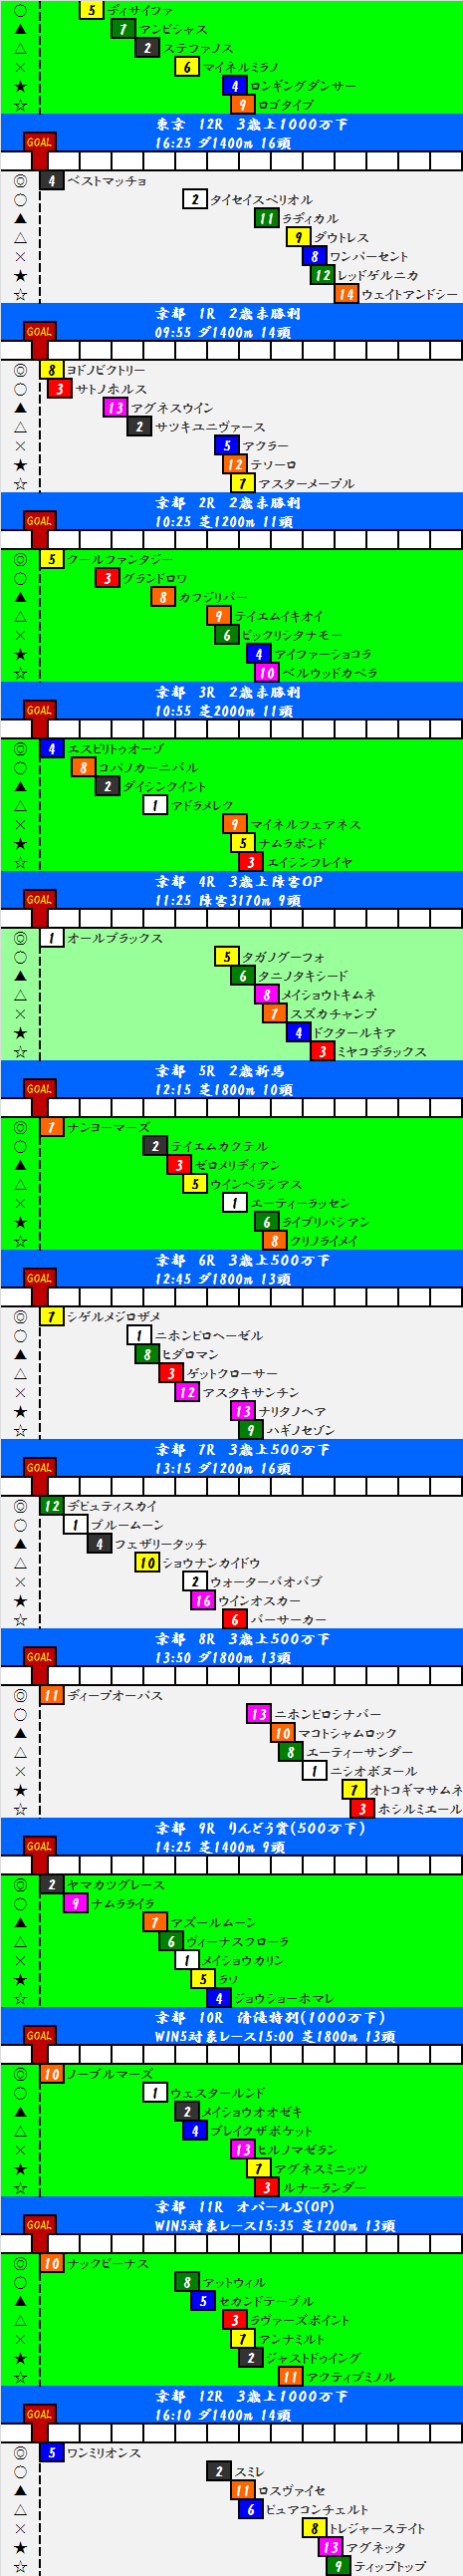 2016100902.png